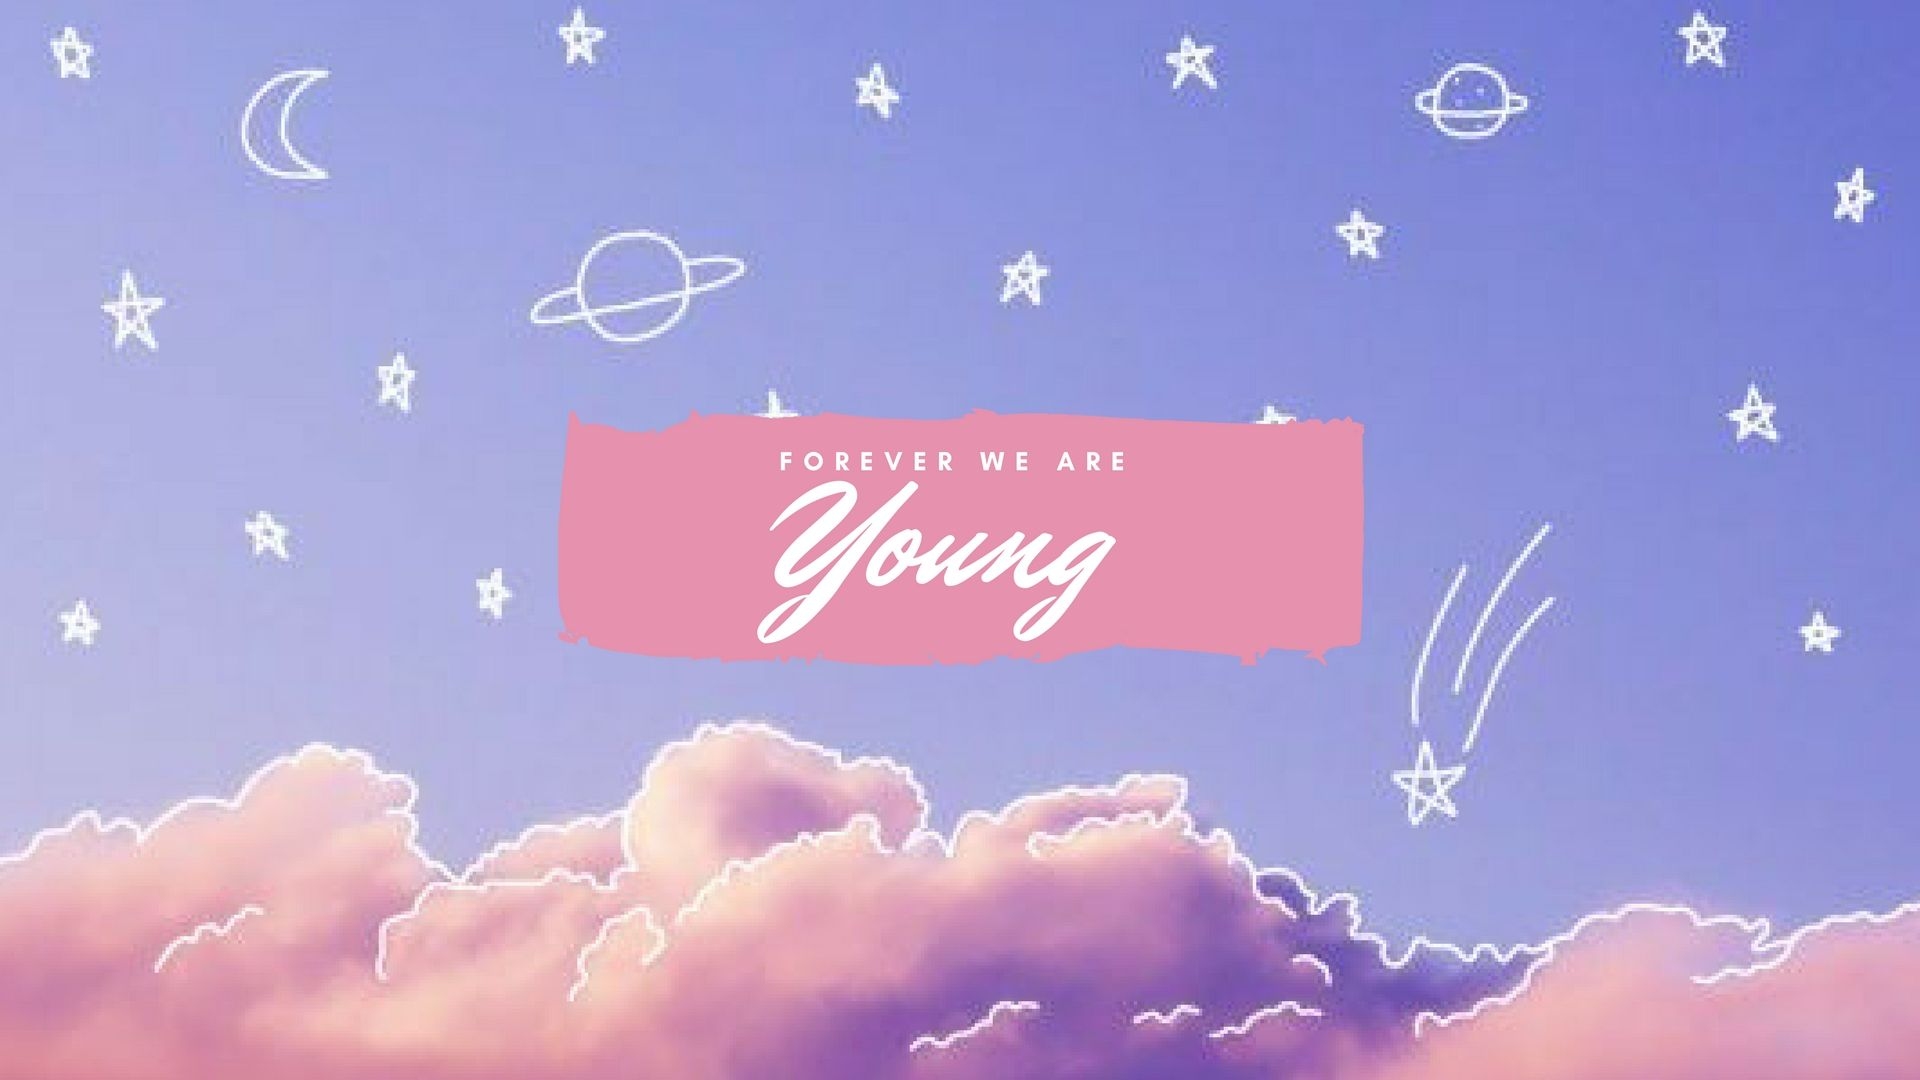 Wallpaper For Pc Cute